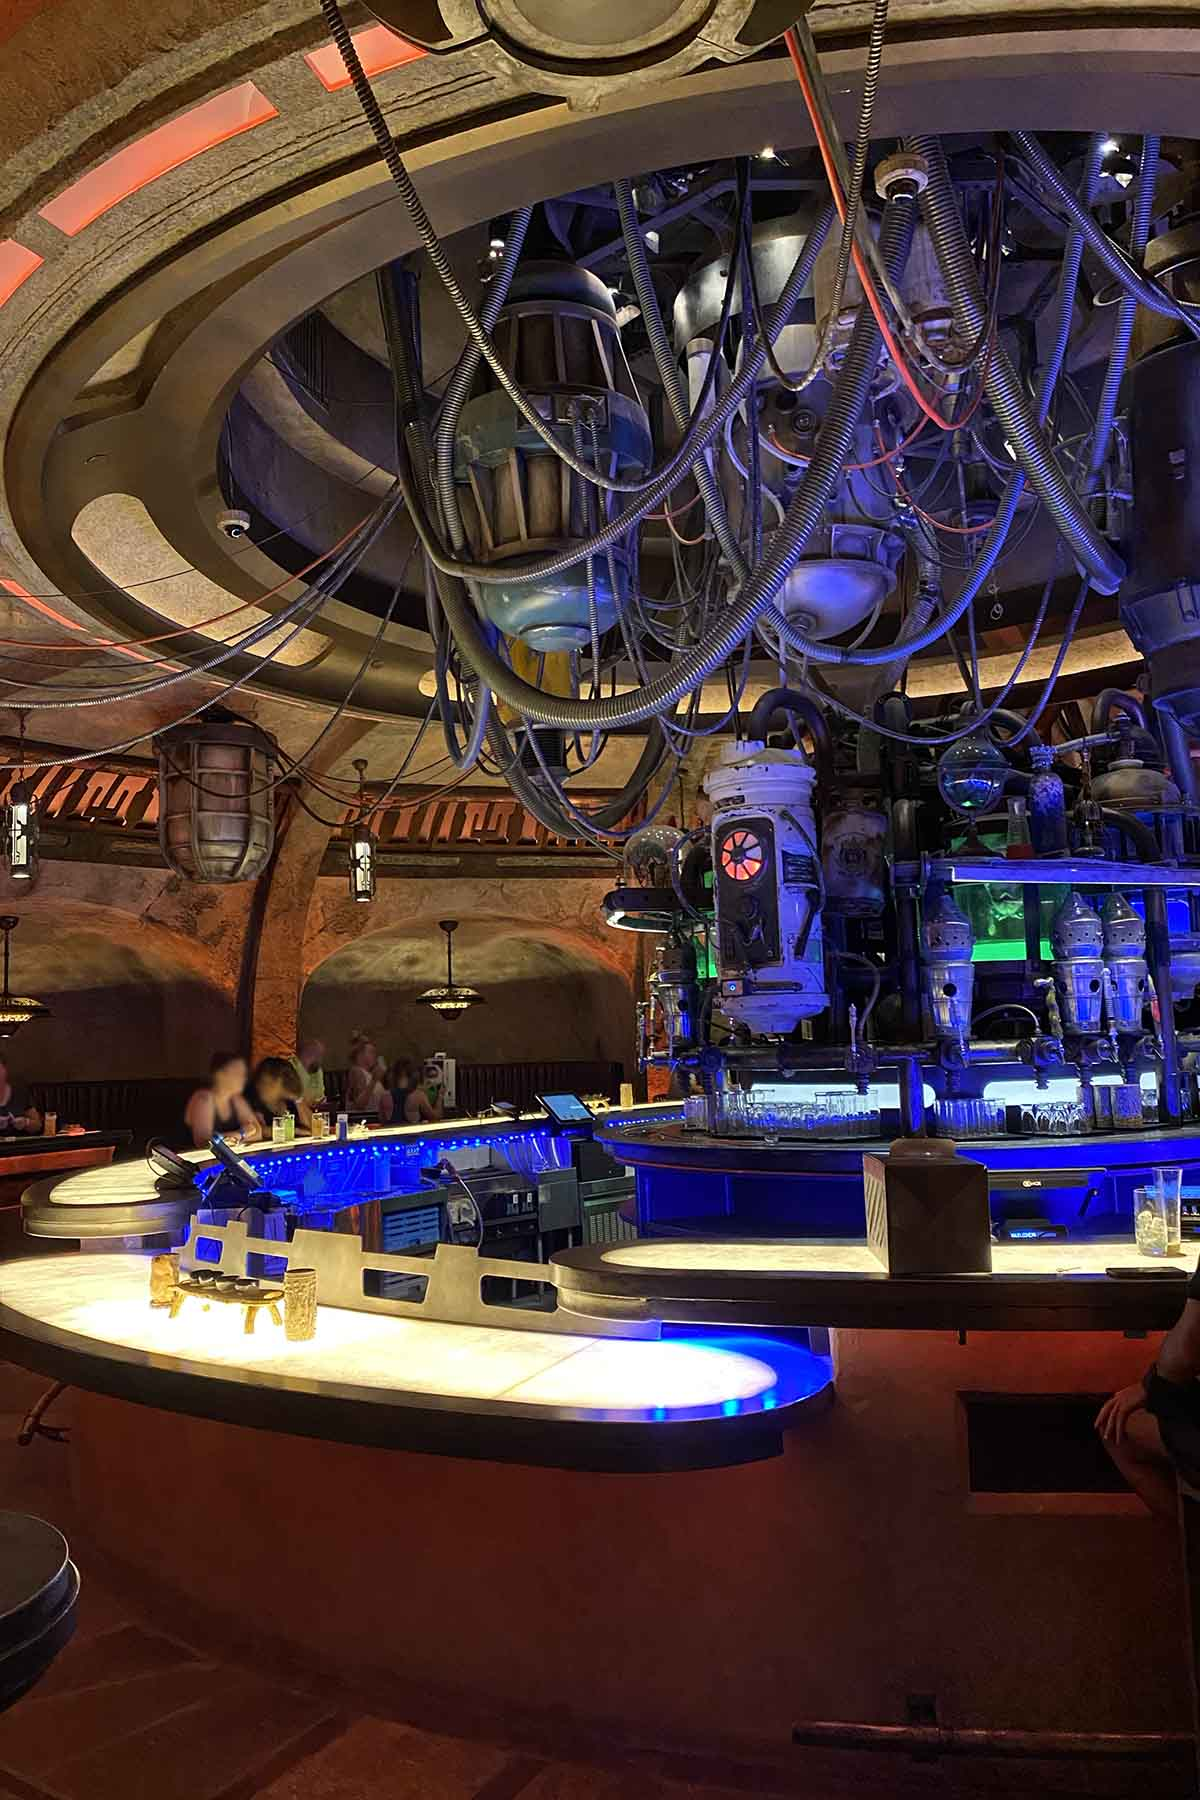 a futuristic-looking bar with lots of exposed cables and colored lighting